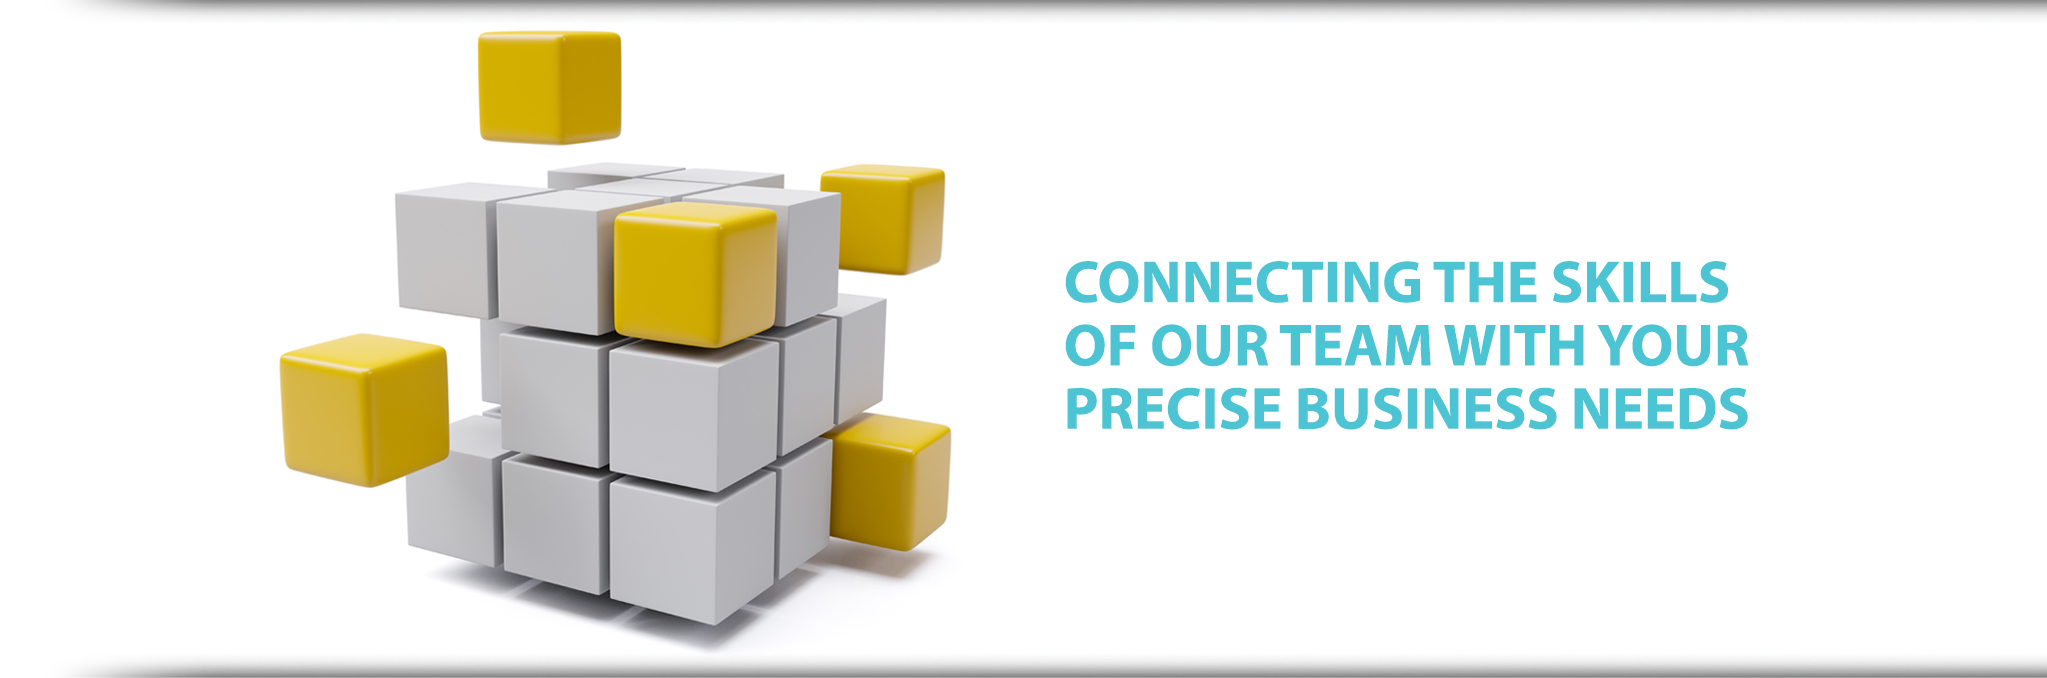 Connecting the skills of our team with your precise business needs